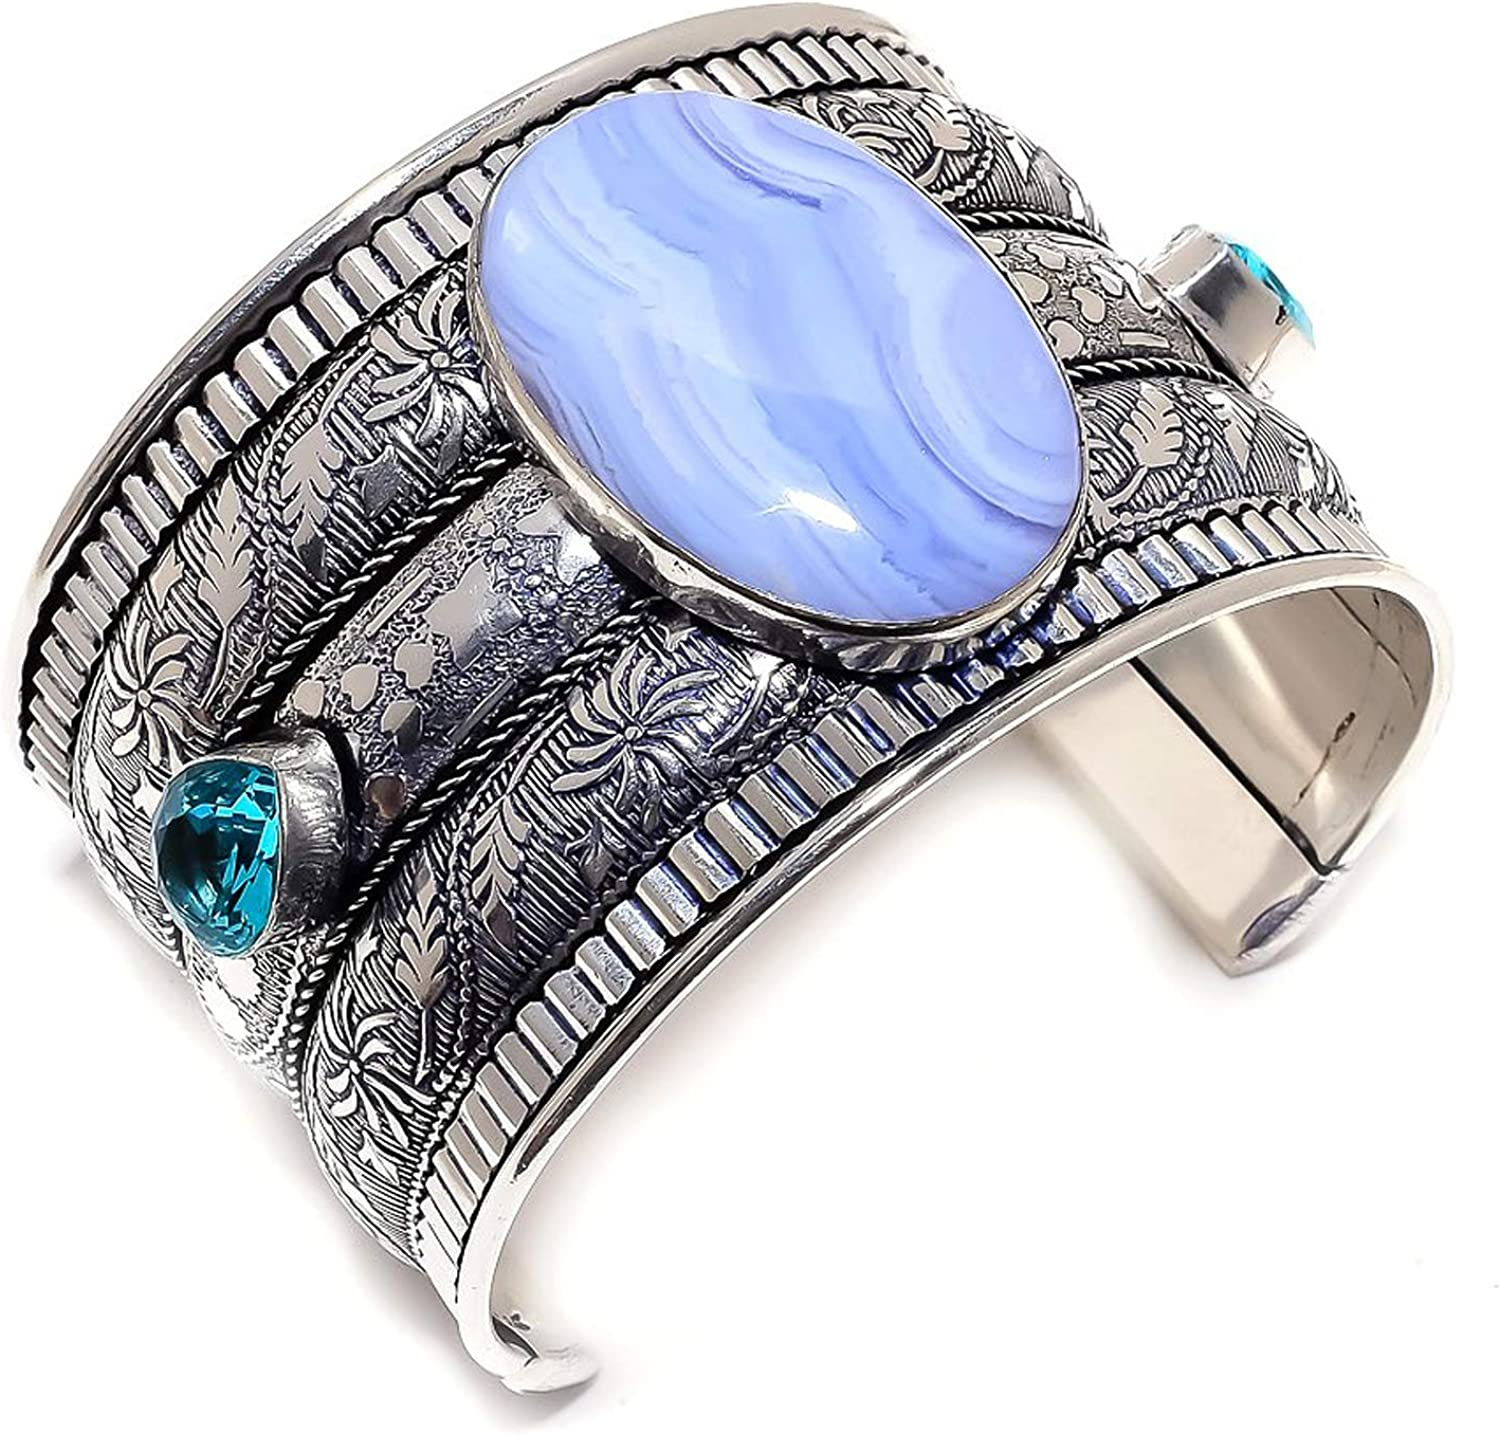 LARA GEMS STONES AND OFFicial store Limited price sale JEWELLERS Blue 925 Lace Topaz Agate S